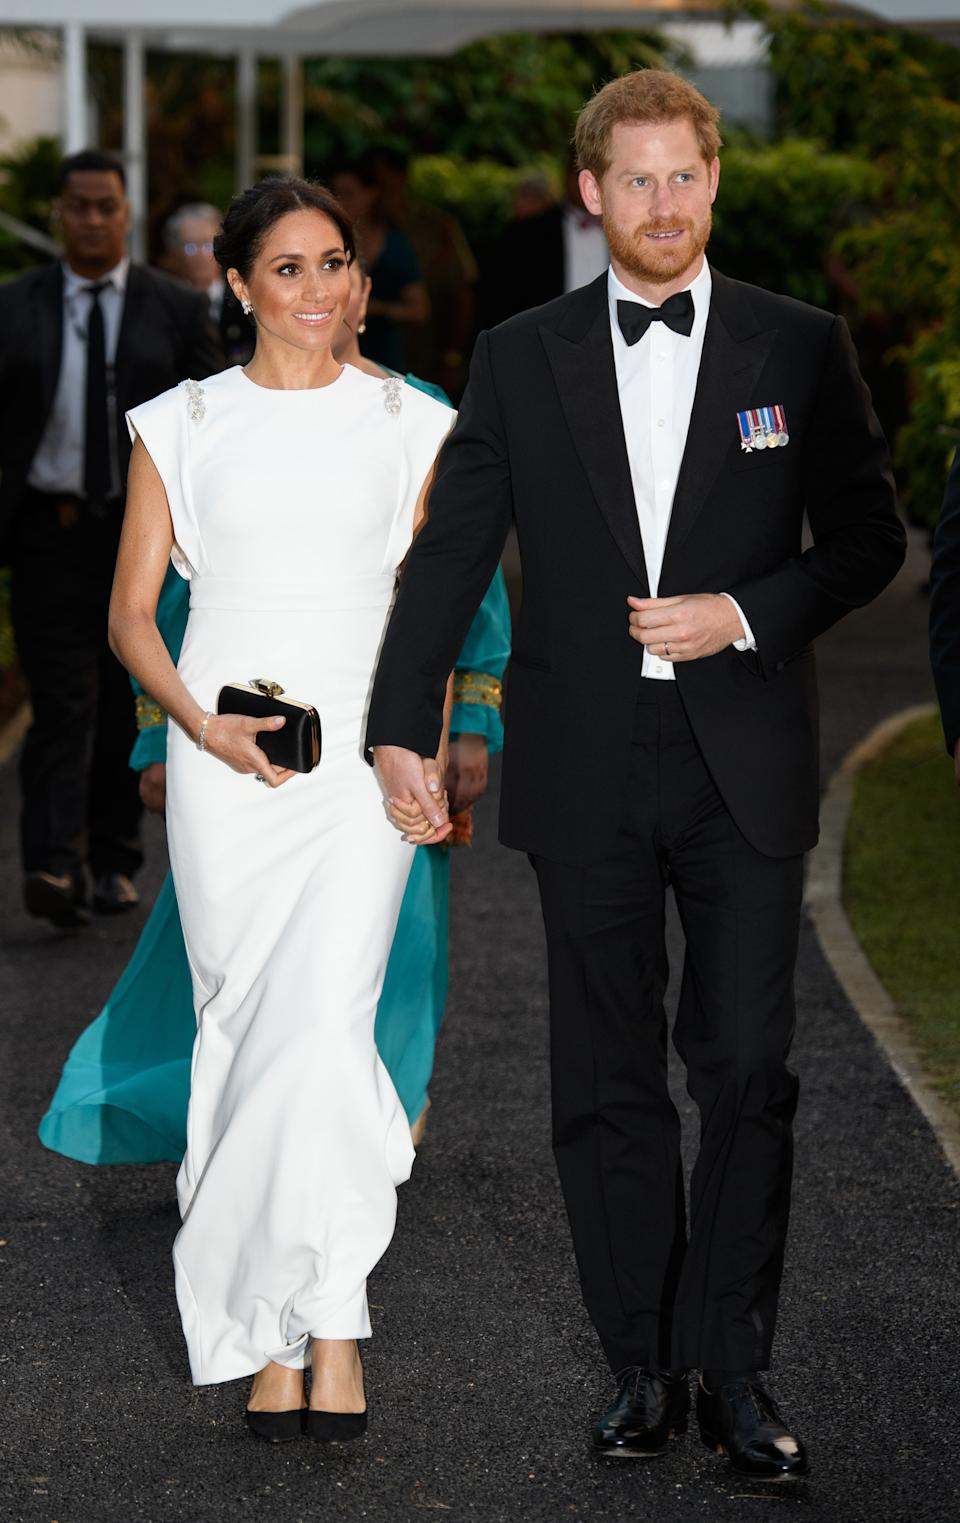 <p>The Duke and Duchess of Sussex captivated millions with their whirlwind romance and barrier breaking royal wedding. The couple's commitment to one another has proved unbreakable since resigning as senior royals for a private life in California. <em>(Image via Getty Images)</em></p>